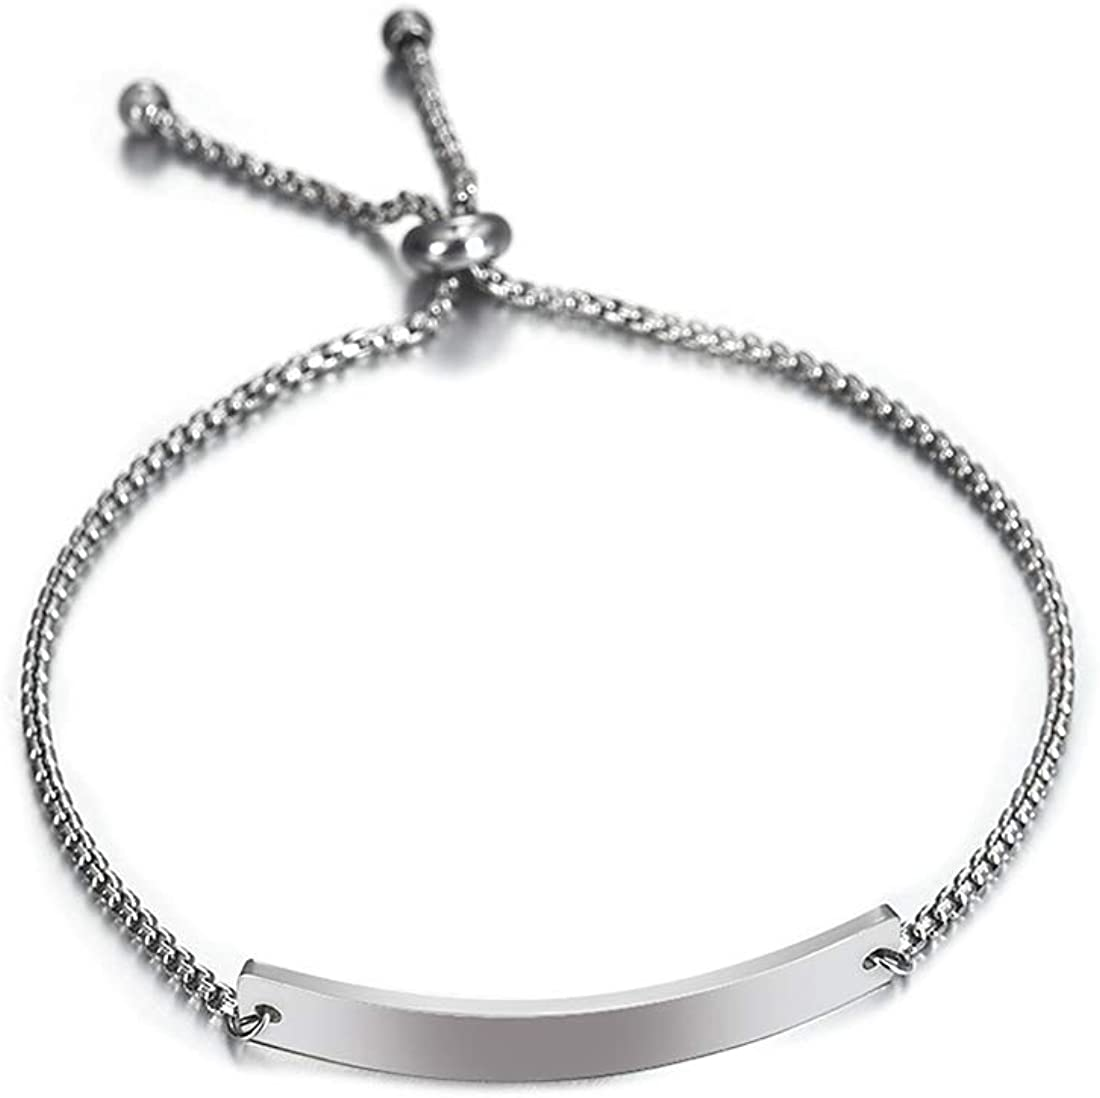 Albeads Personalized Custom Engraving Translated San Francisco Mall Steel Bracele ID Stainless